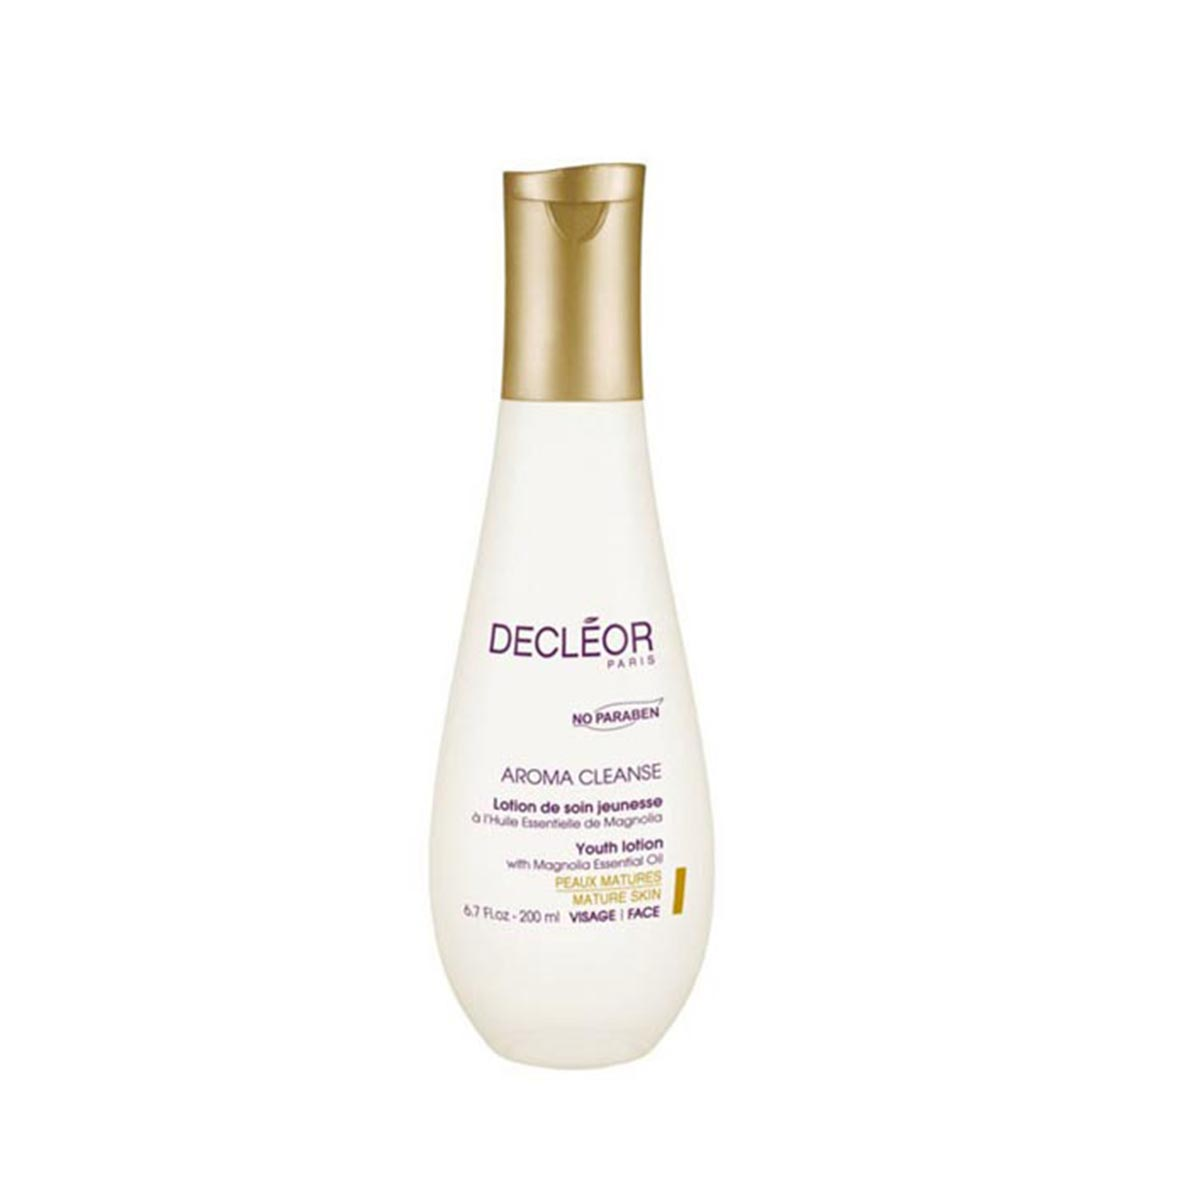 Decleor aroma cleanse lotion 200ml